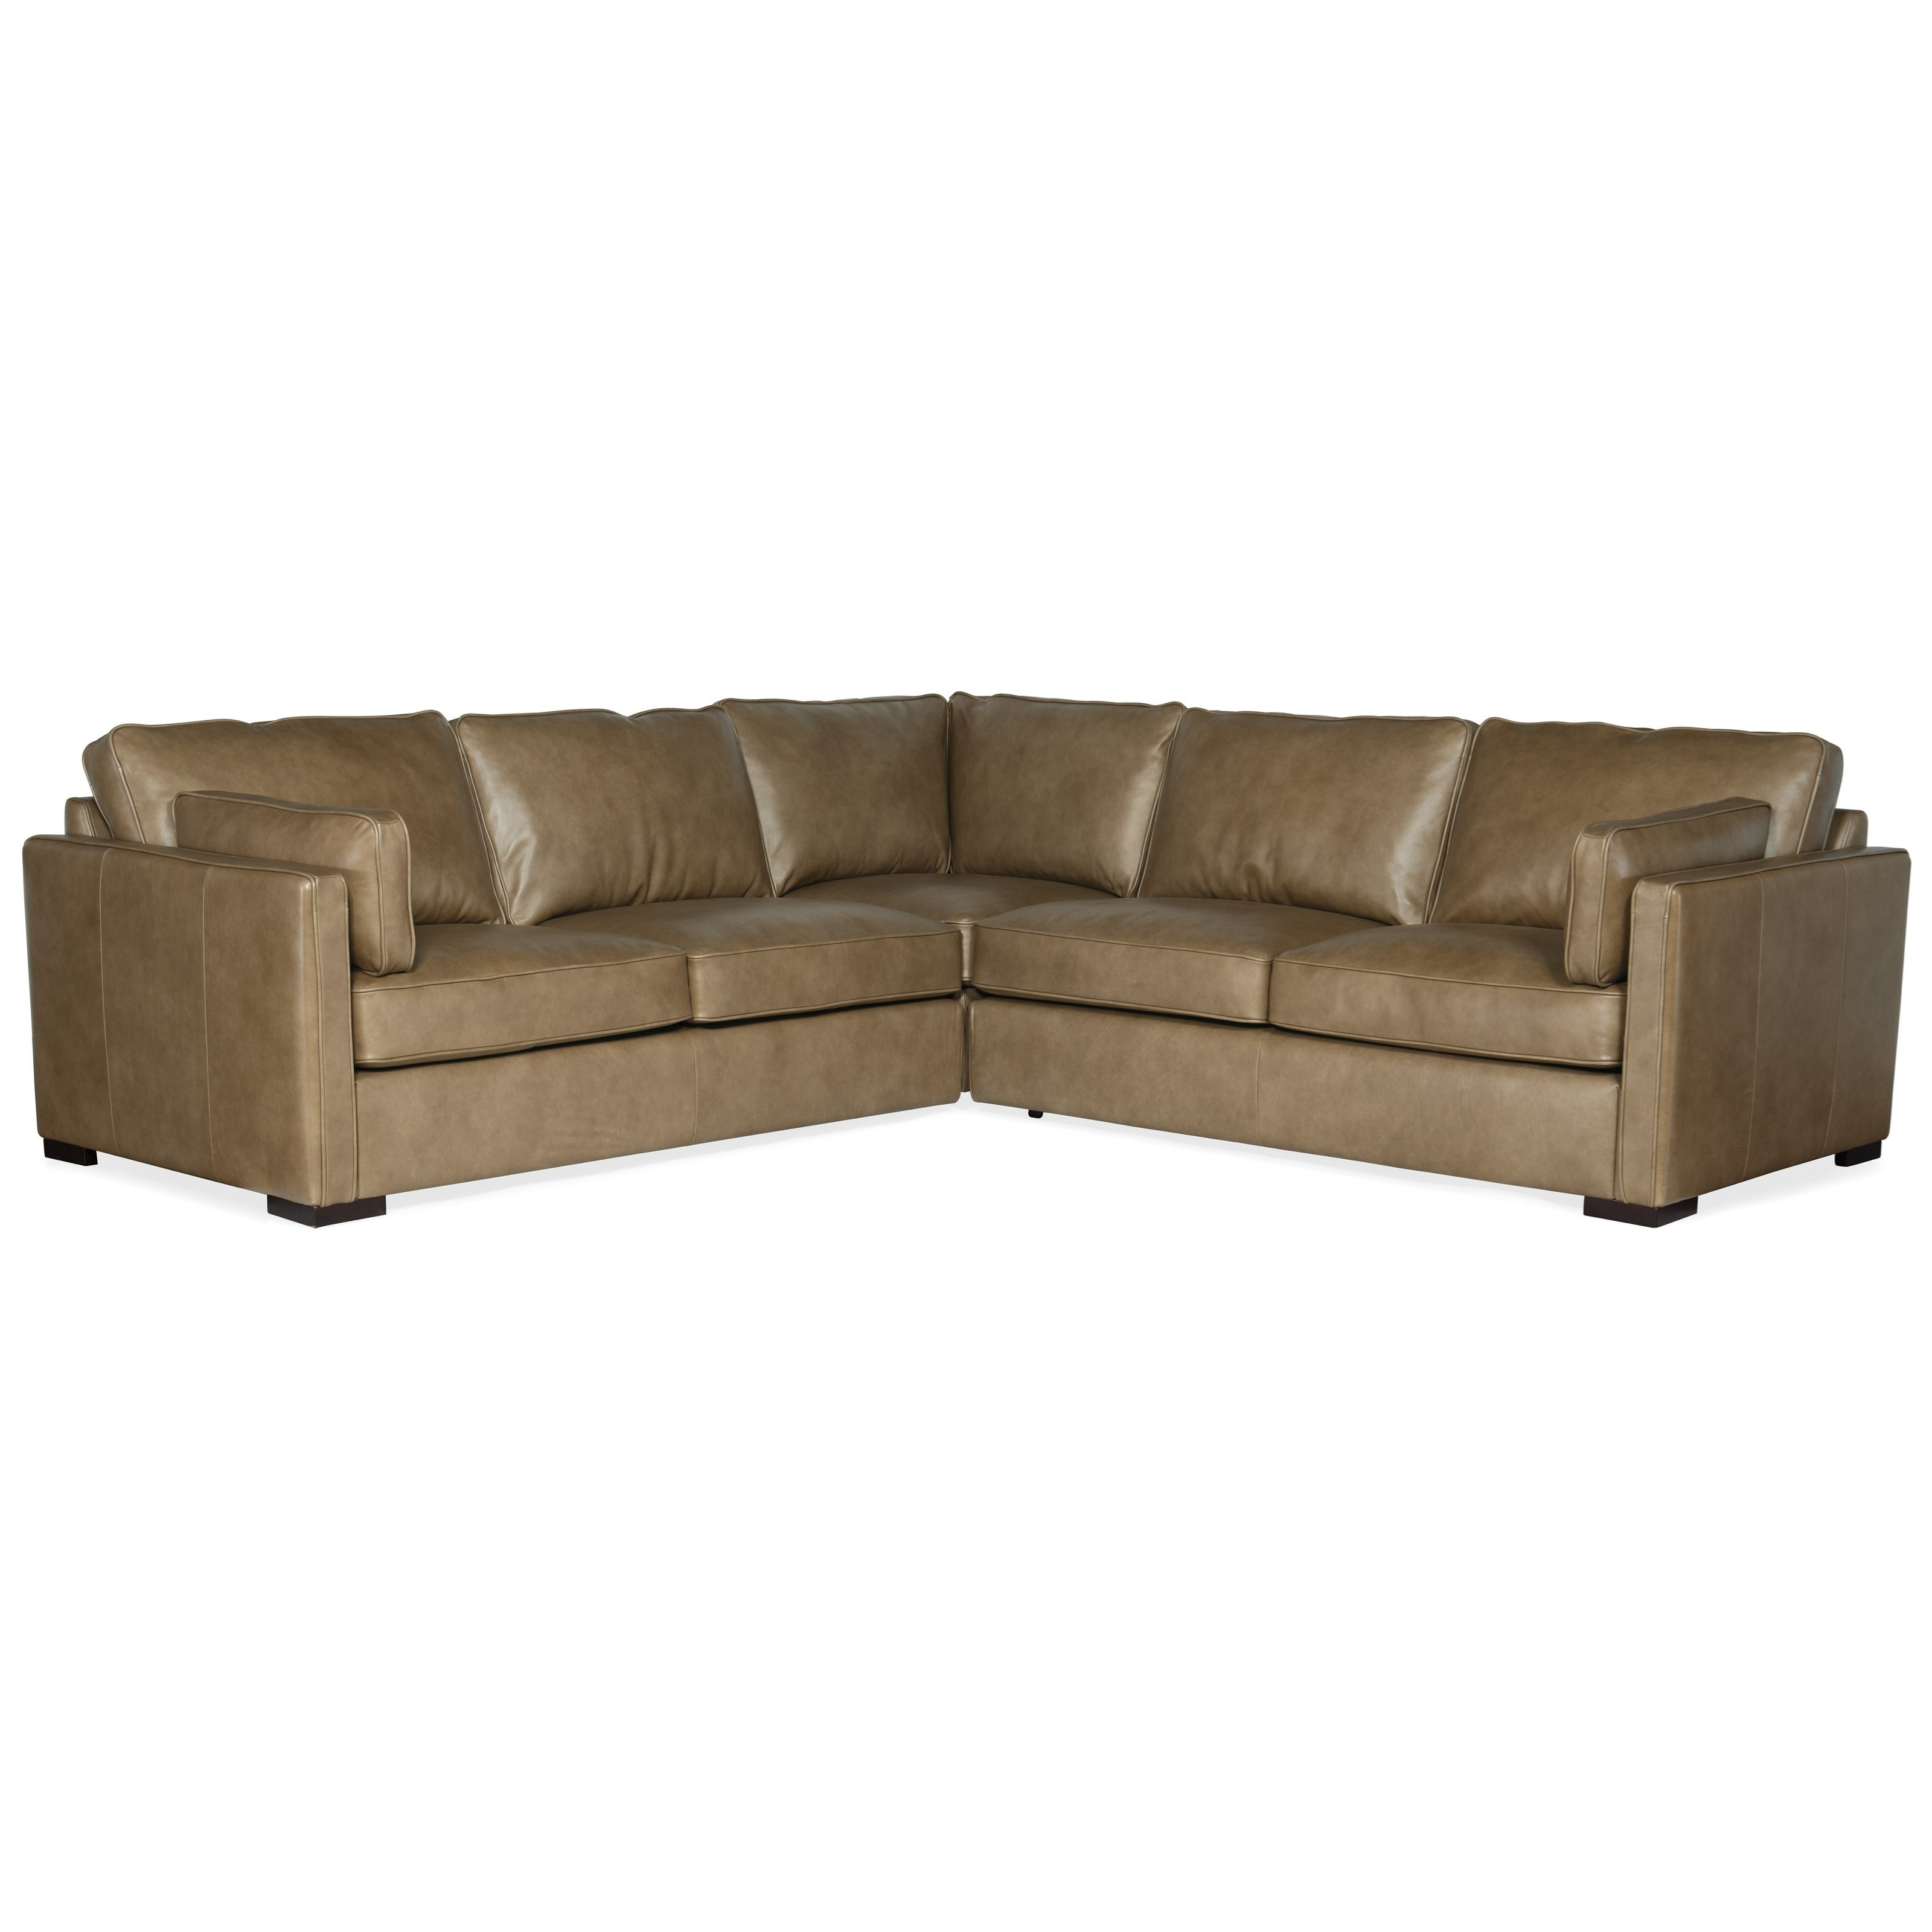 Romiah 3-Piece Stationary Sectional by Hooker Furniture at Zak's Home